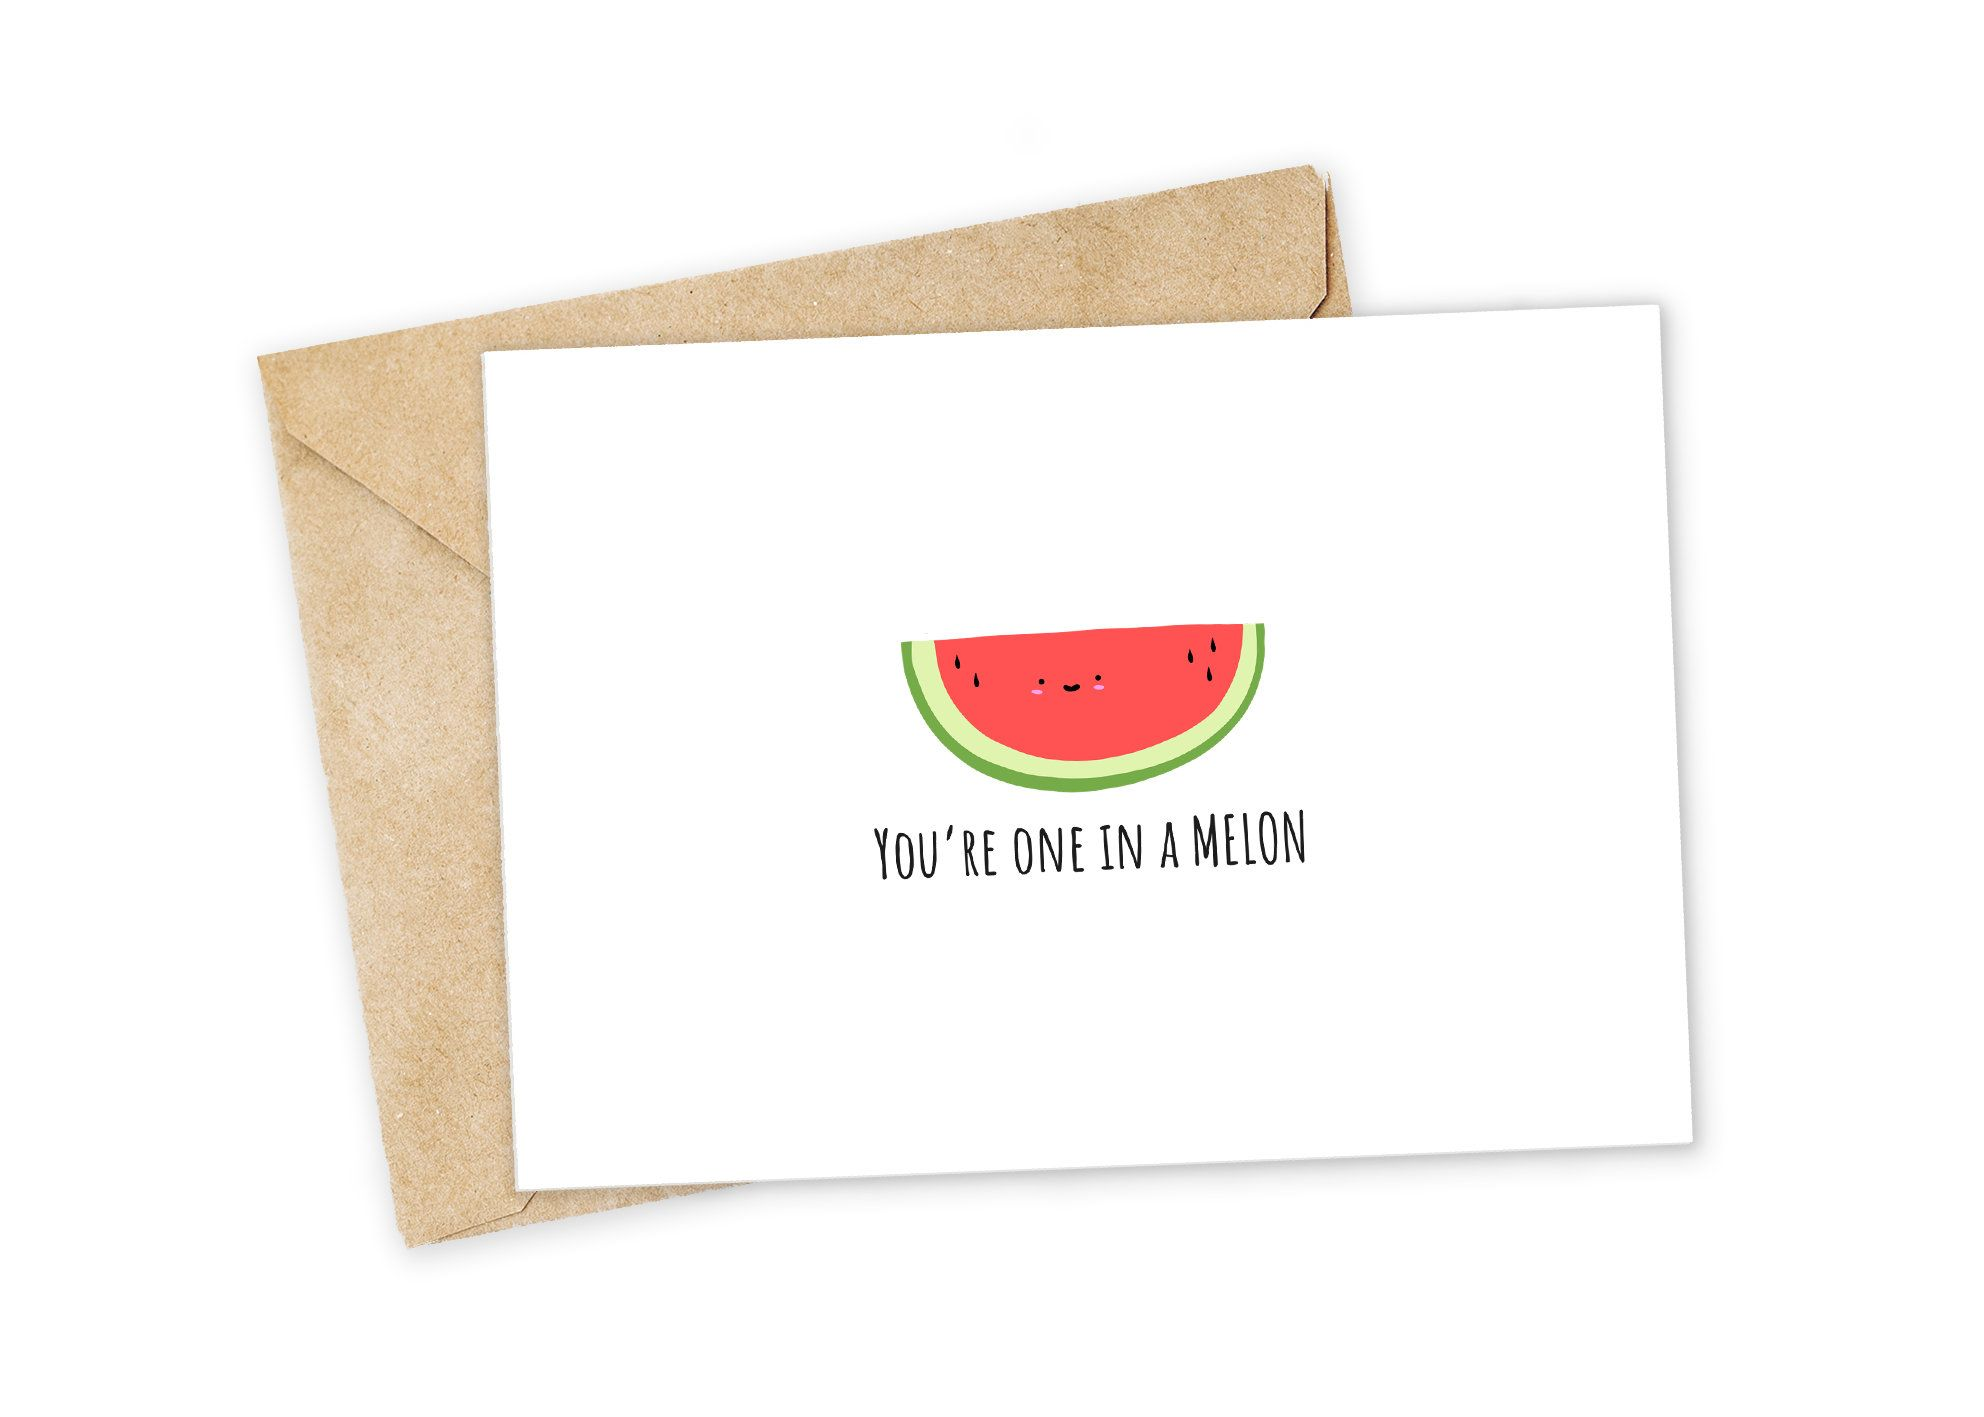 One in a Melon Melon Greeting Card Happy Card I Love You | Etsy